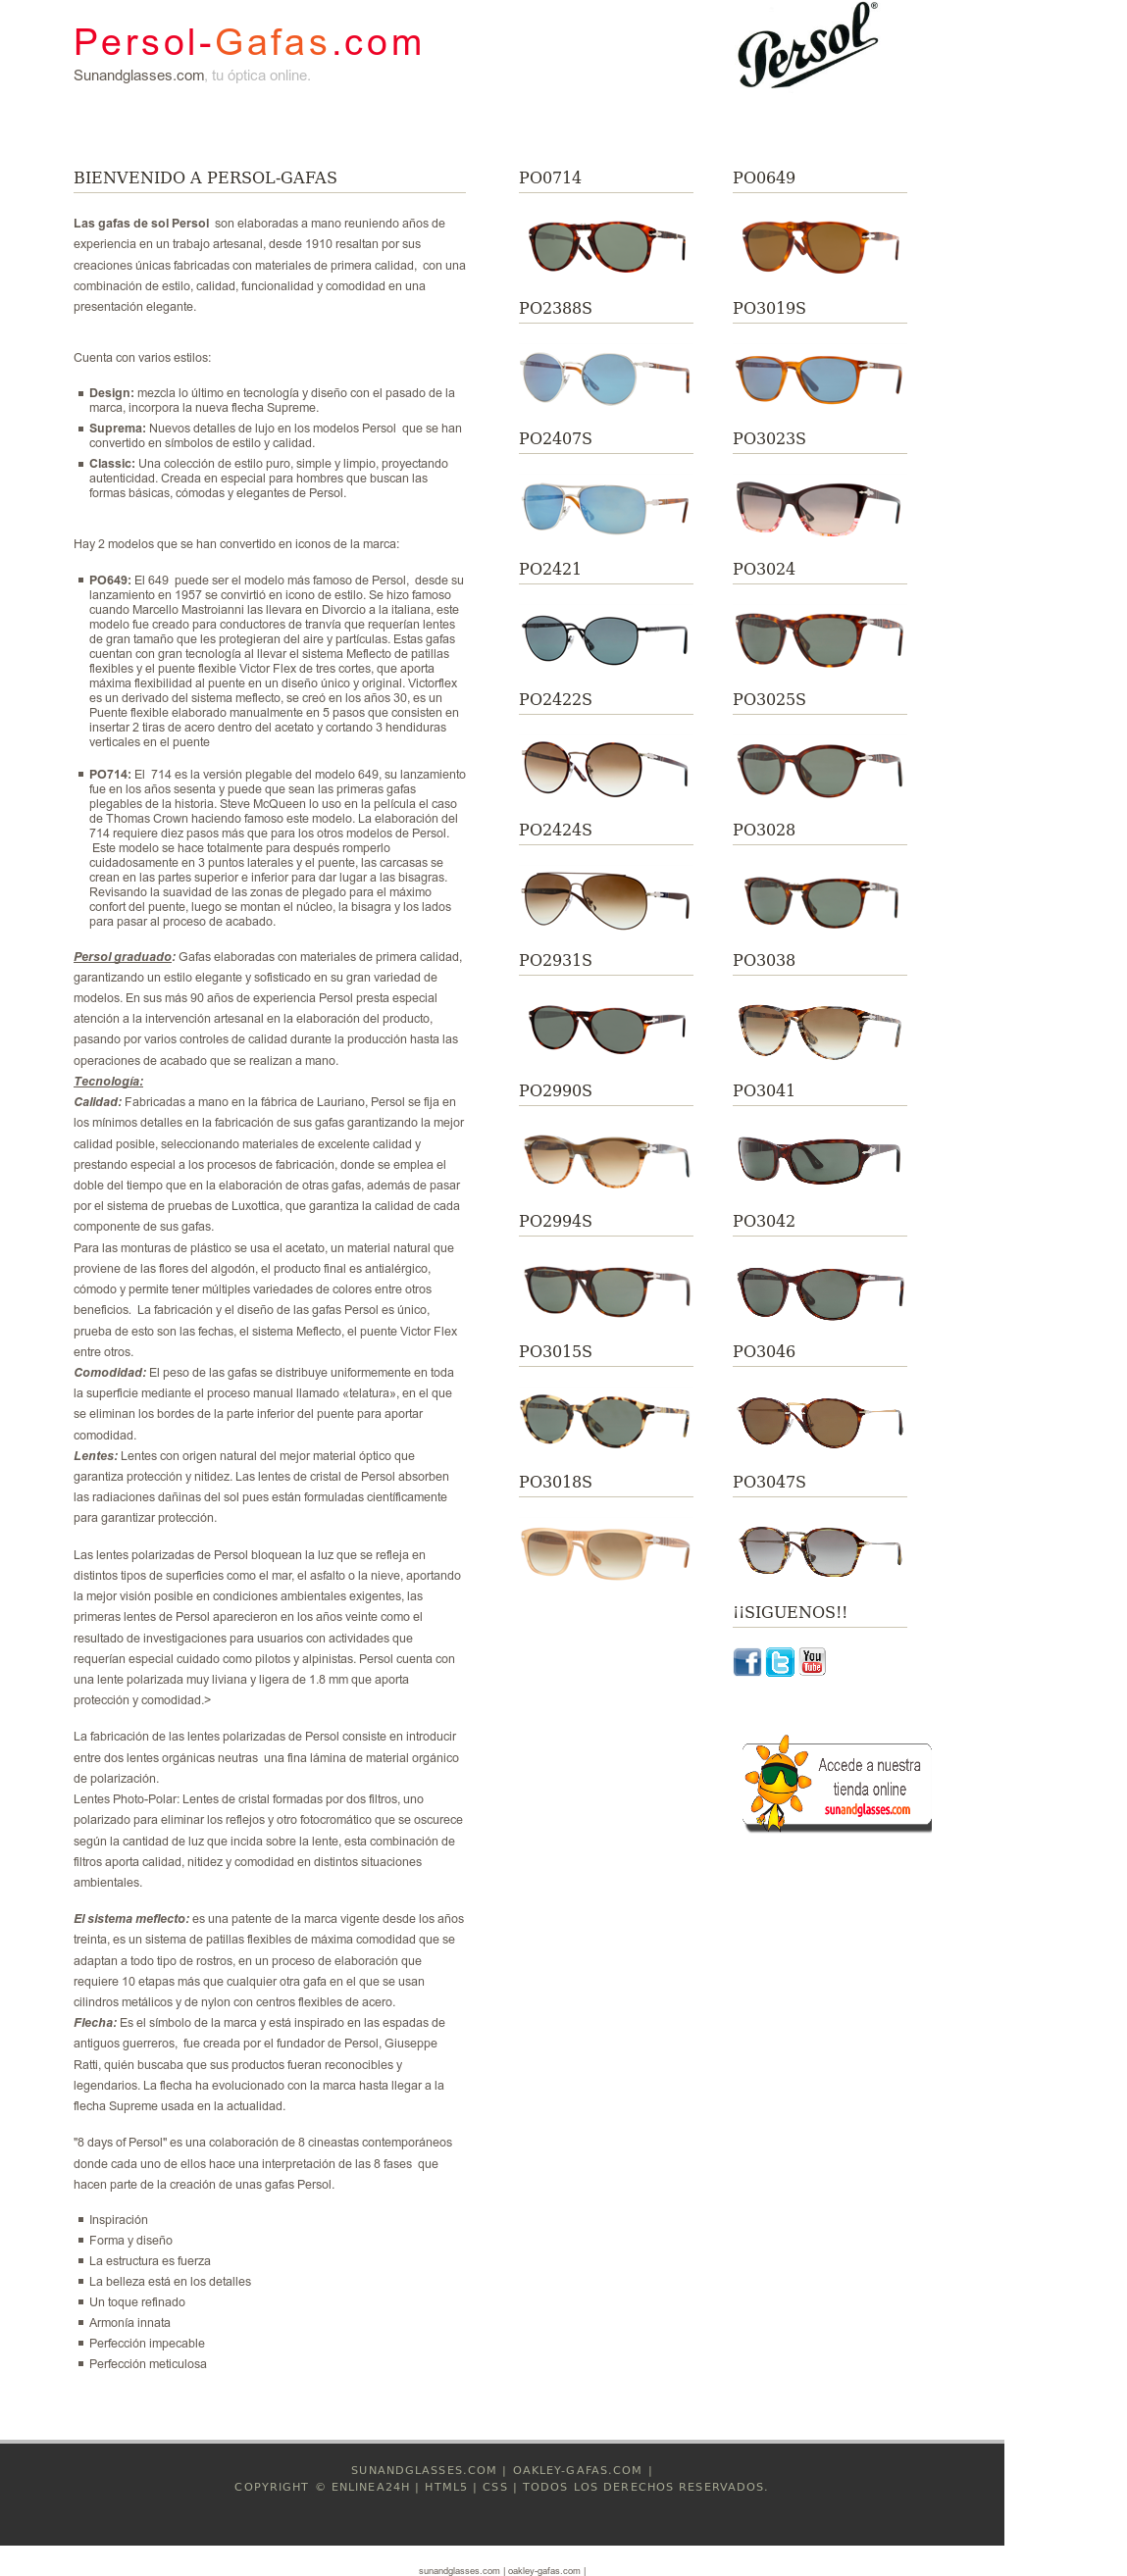 945b1ef98f Persol Gafas Competitors, Revenue and Employees - Owler Company Profile